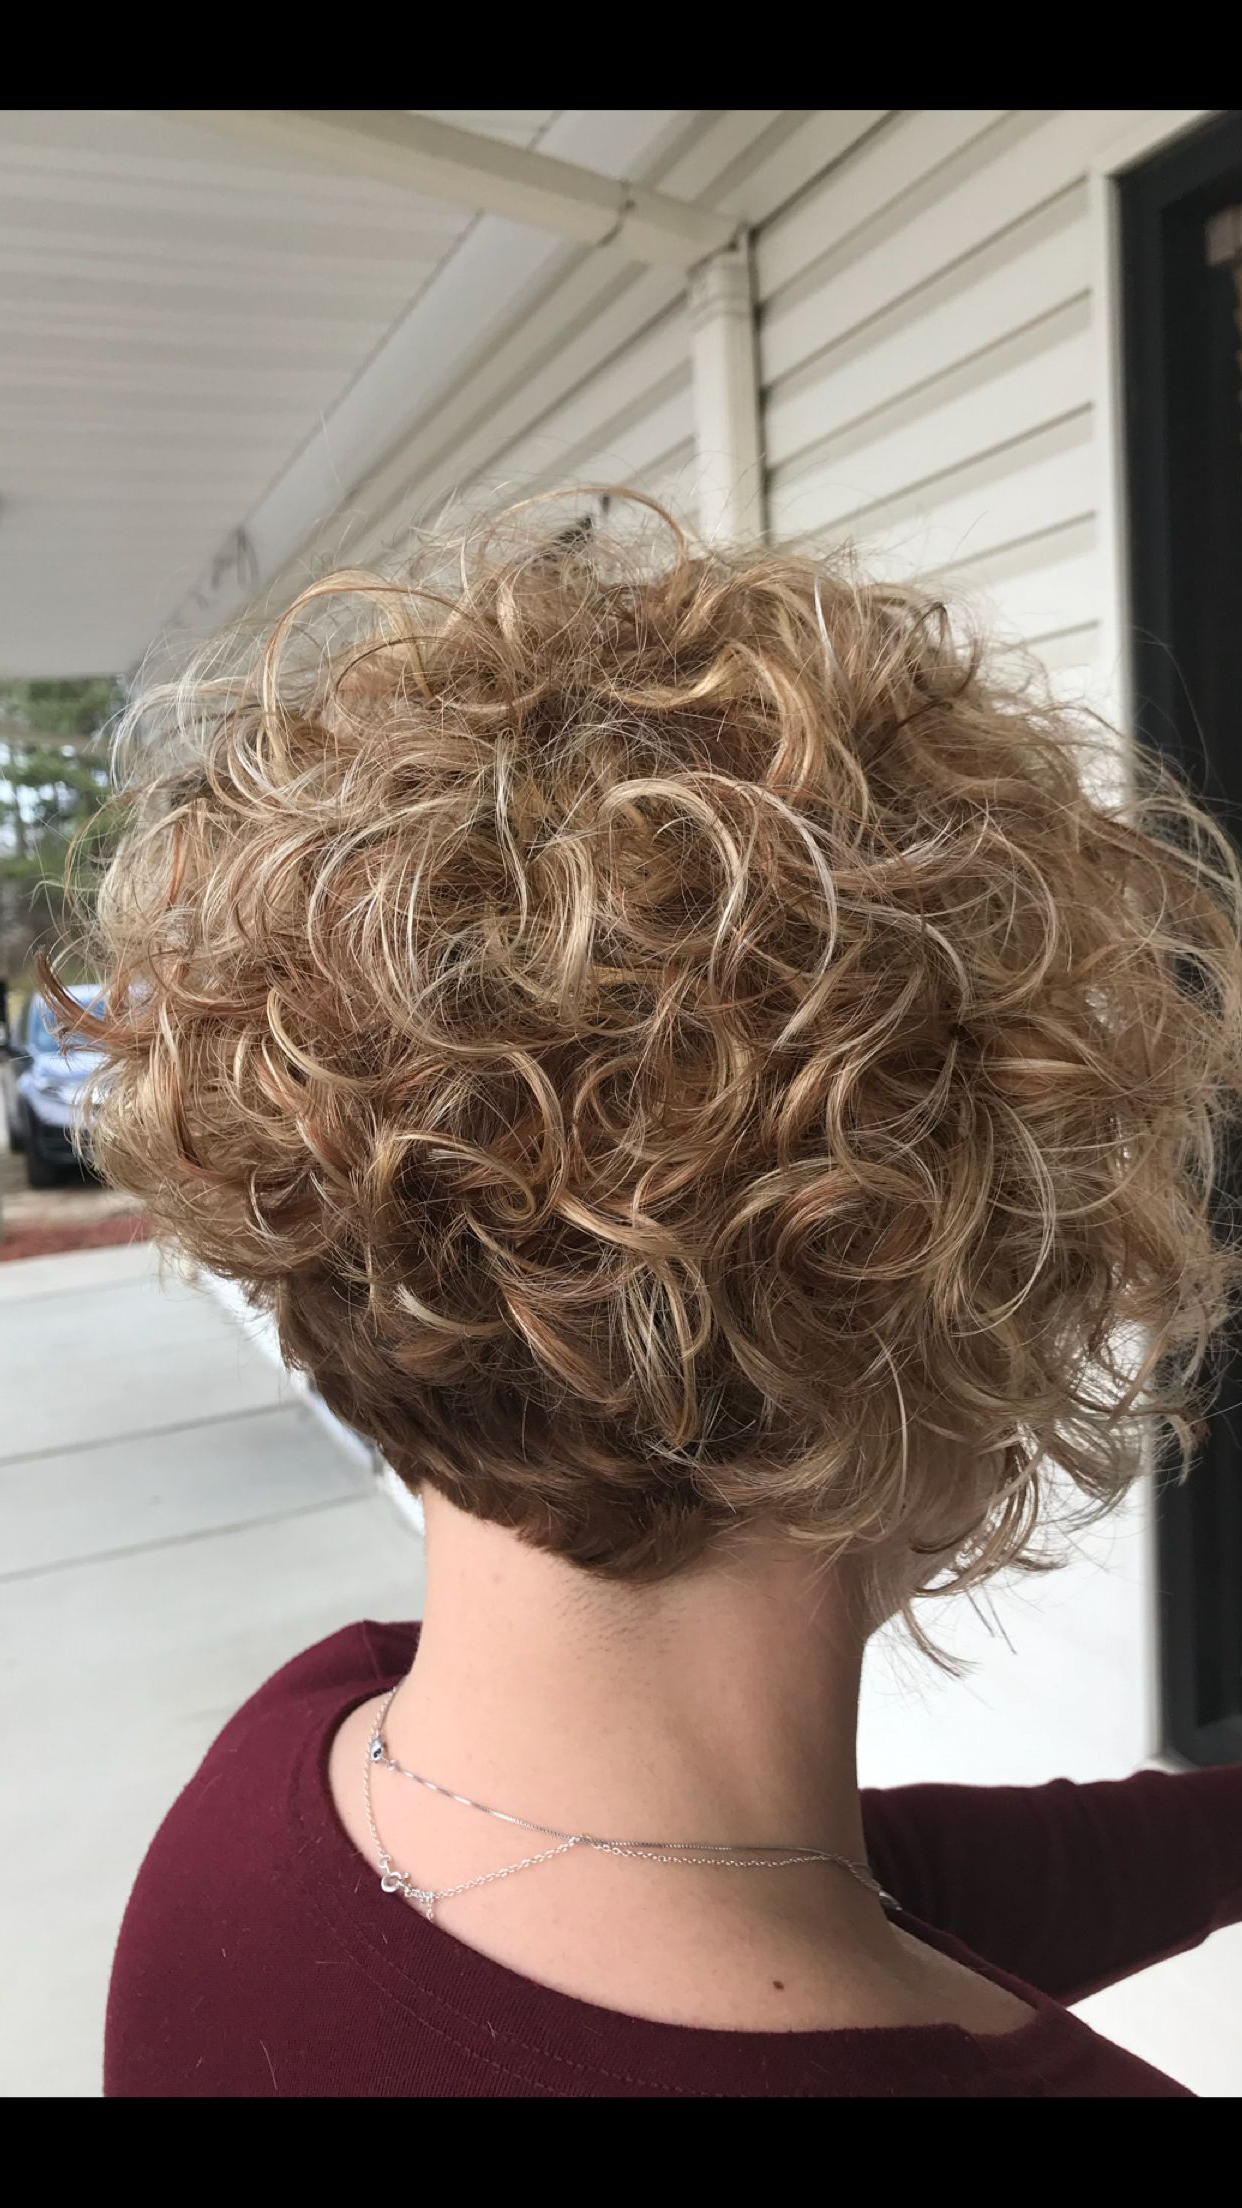 Pingladis Ondina Cubas Rapalo On Cortes De Cabello | Pinterest With Regard To Angelic Blonde Balayage Bob Hairstyles With Curls (View 10 of 20)